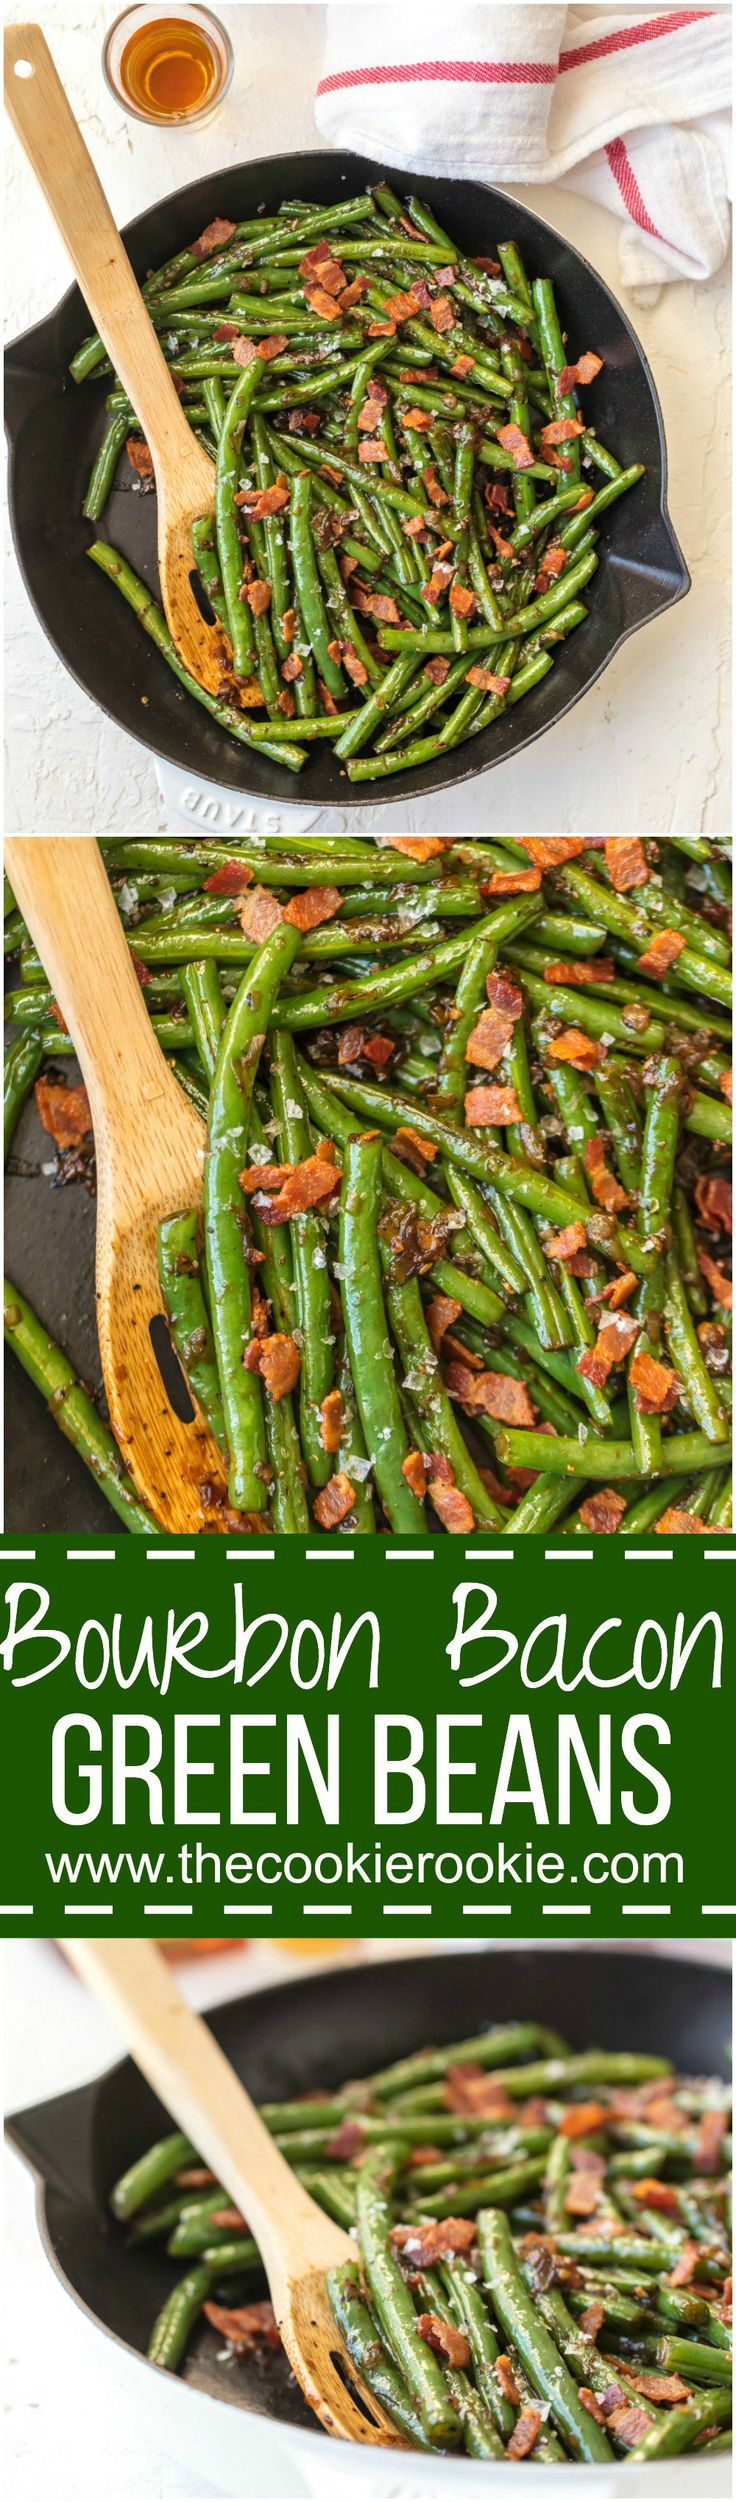 Skillet Bourbon Bacon Green Beans | The Cookie Rookie | Bloglovin'